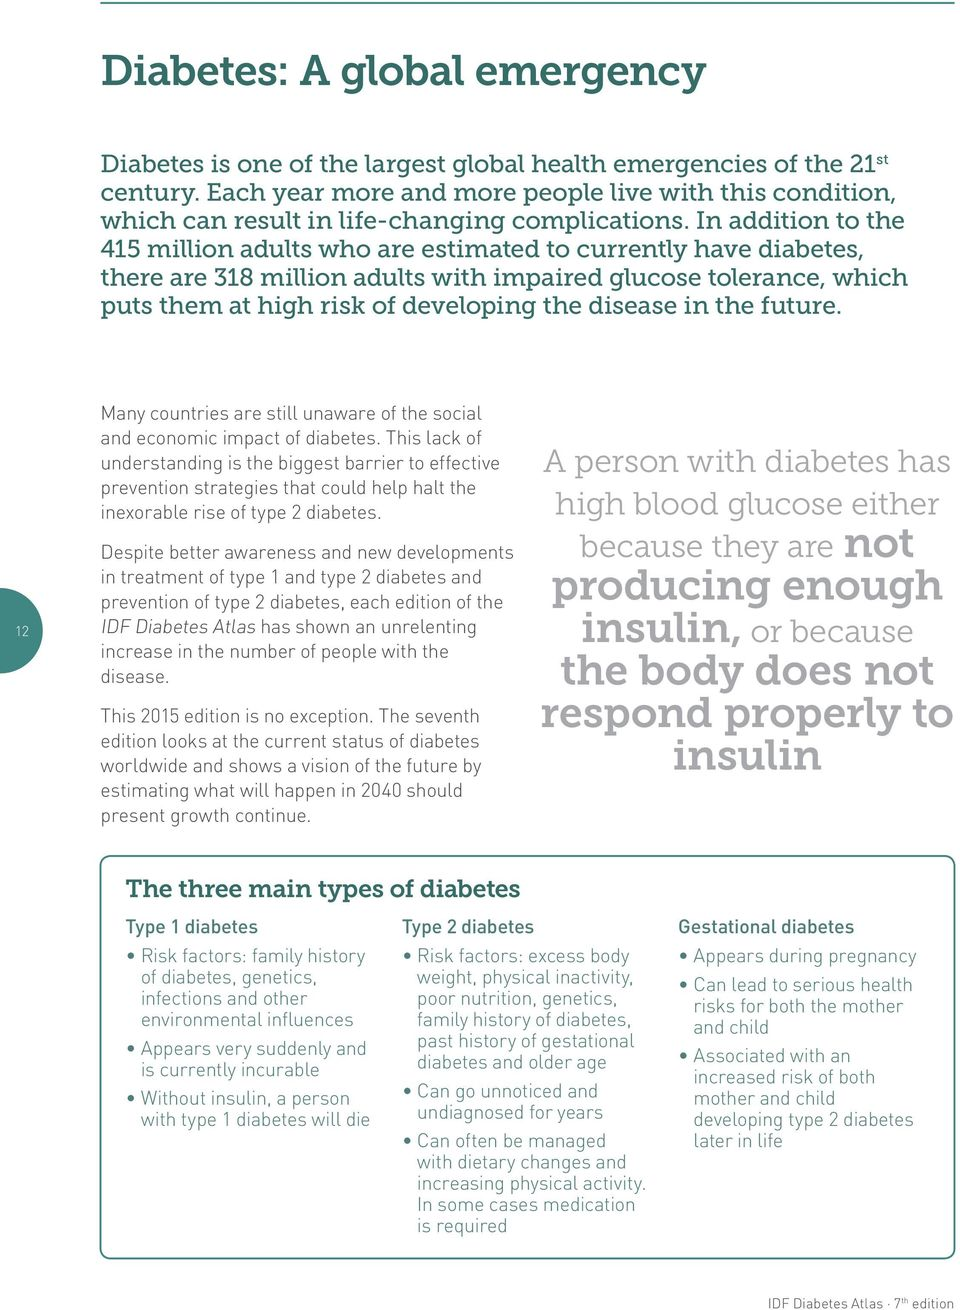 In addition to the 415 million adults who are estimated to currently have diabetes, there are 318 million adults with impaired glucose tolerance, which puts them at high risk of developing the